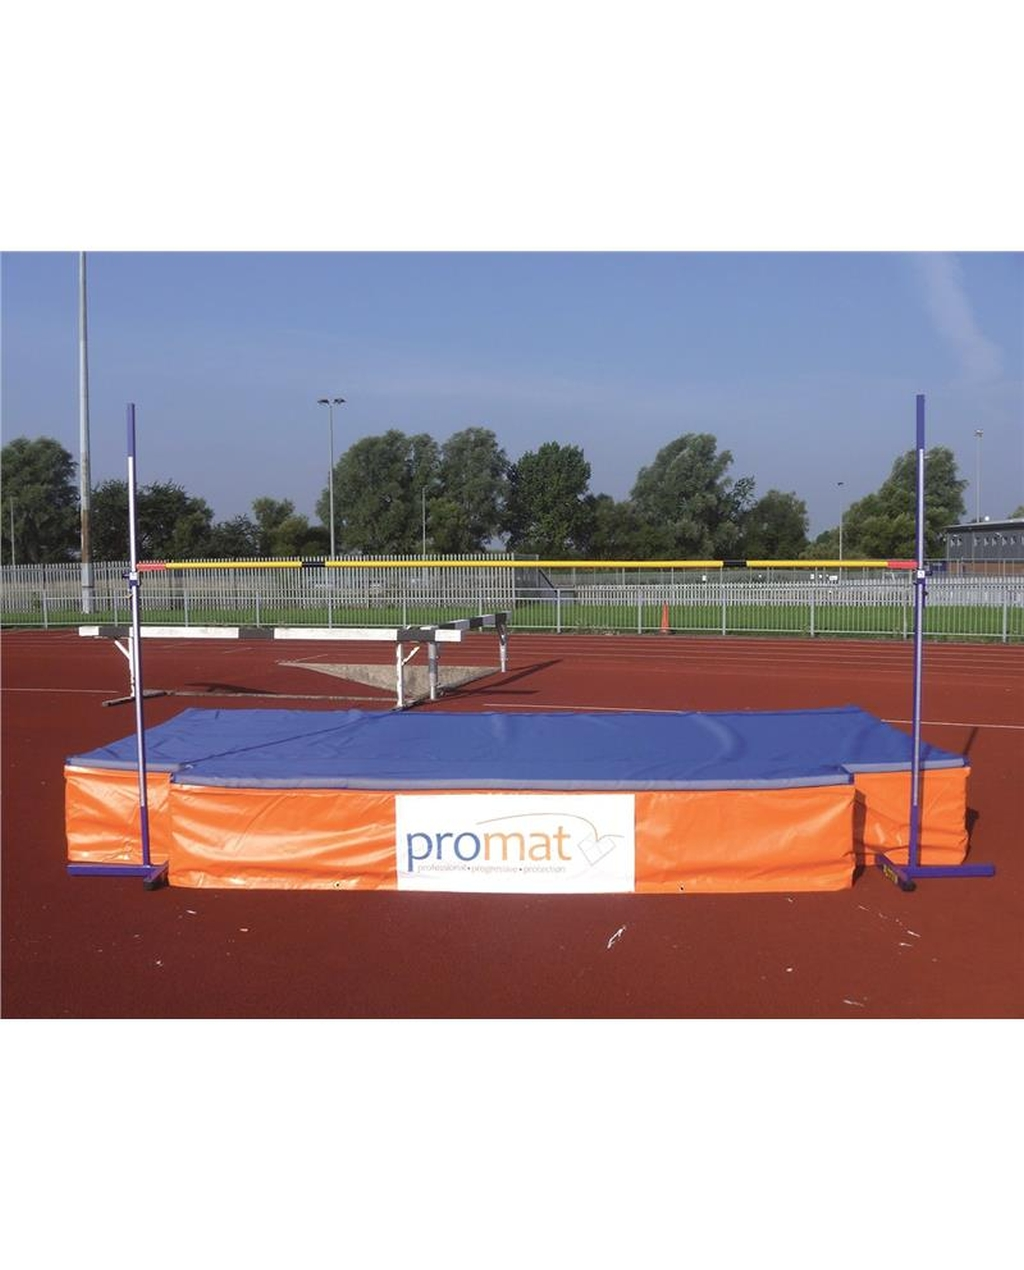 PROMAT SCHOOL HIGH JUMP PRO 3 MODULES 5M X 2.5M X 510MM WITH RAIN COVER